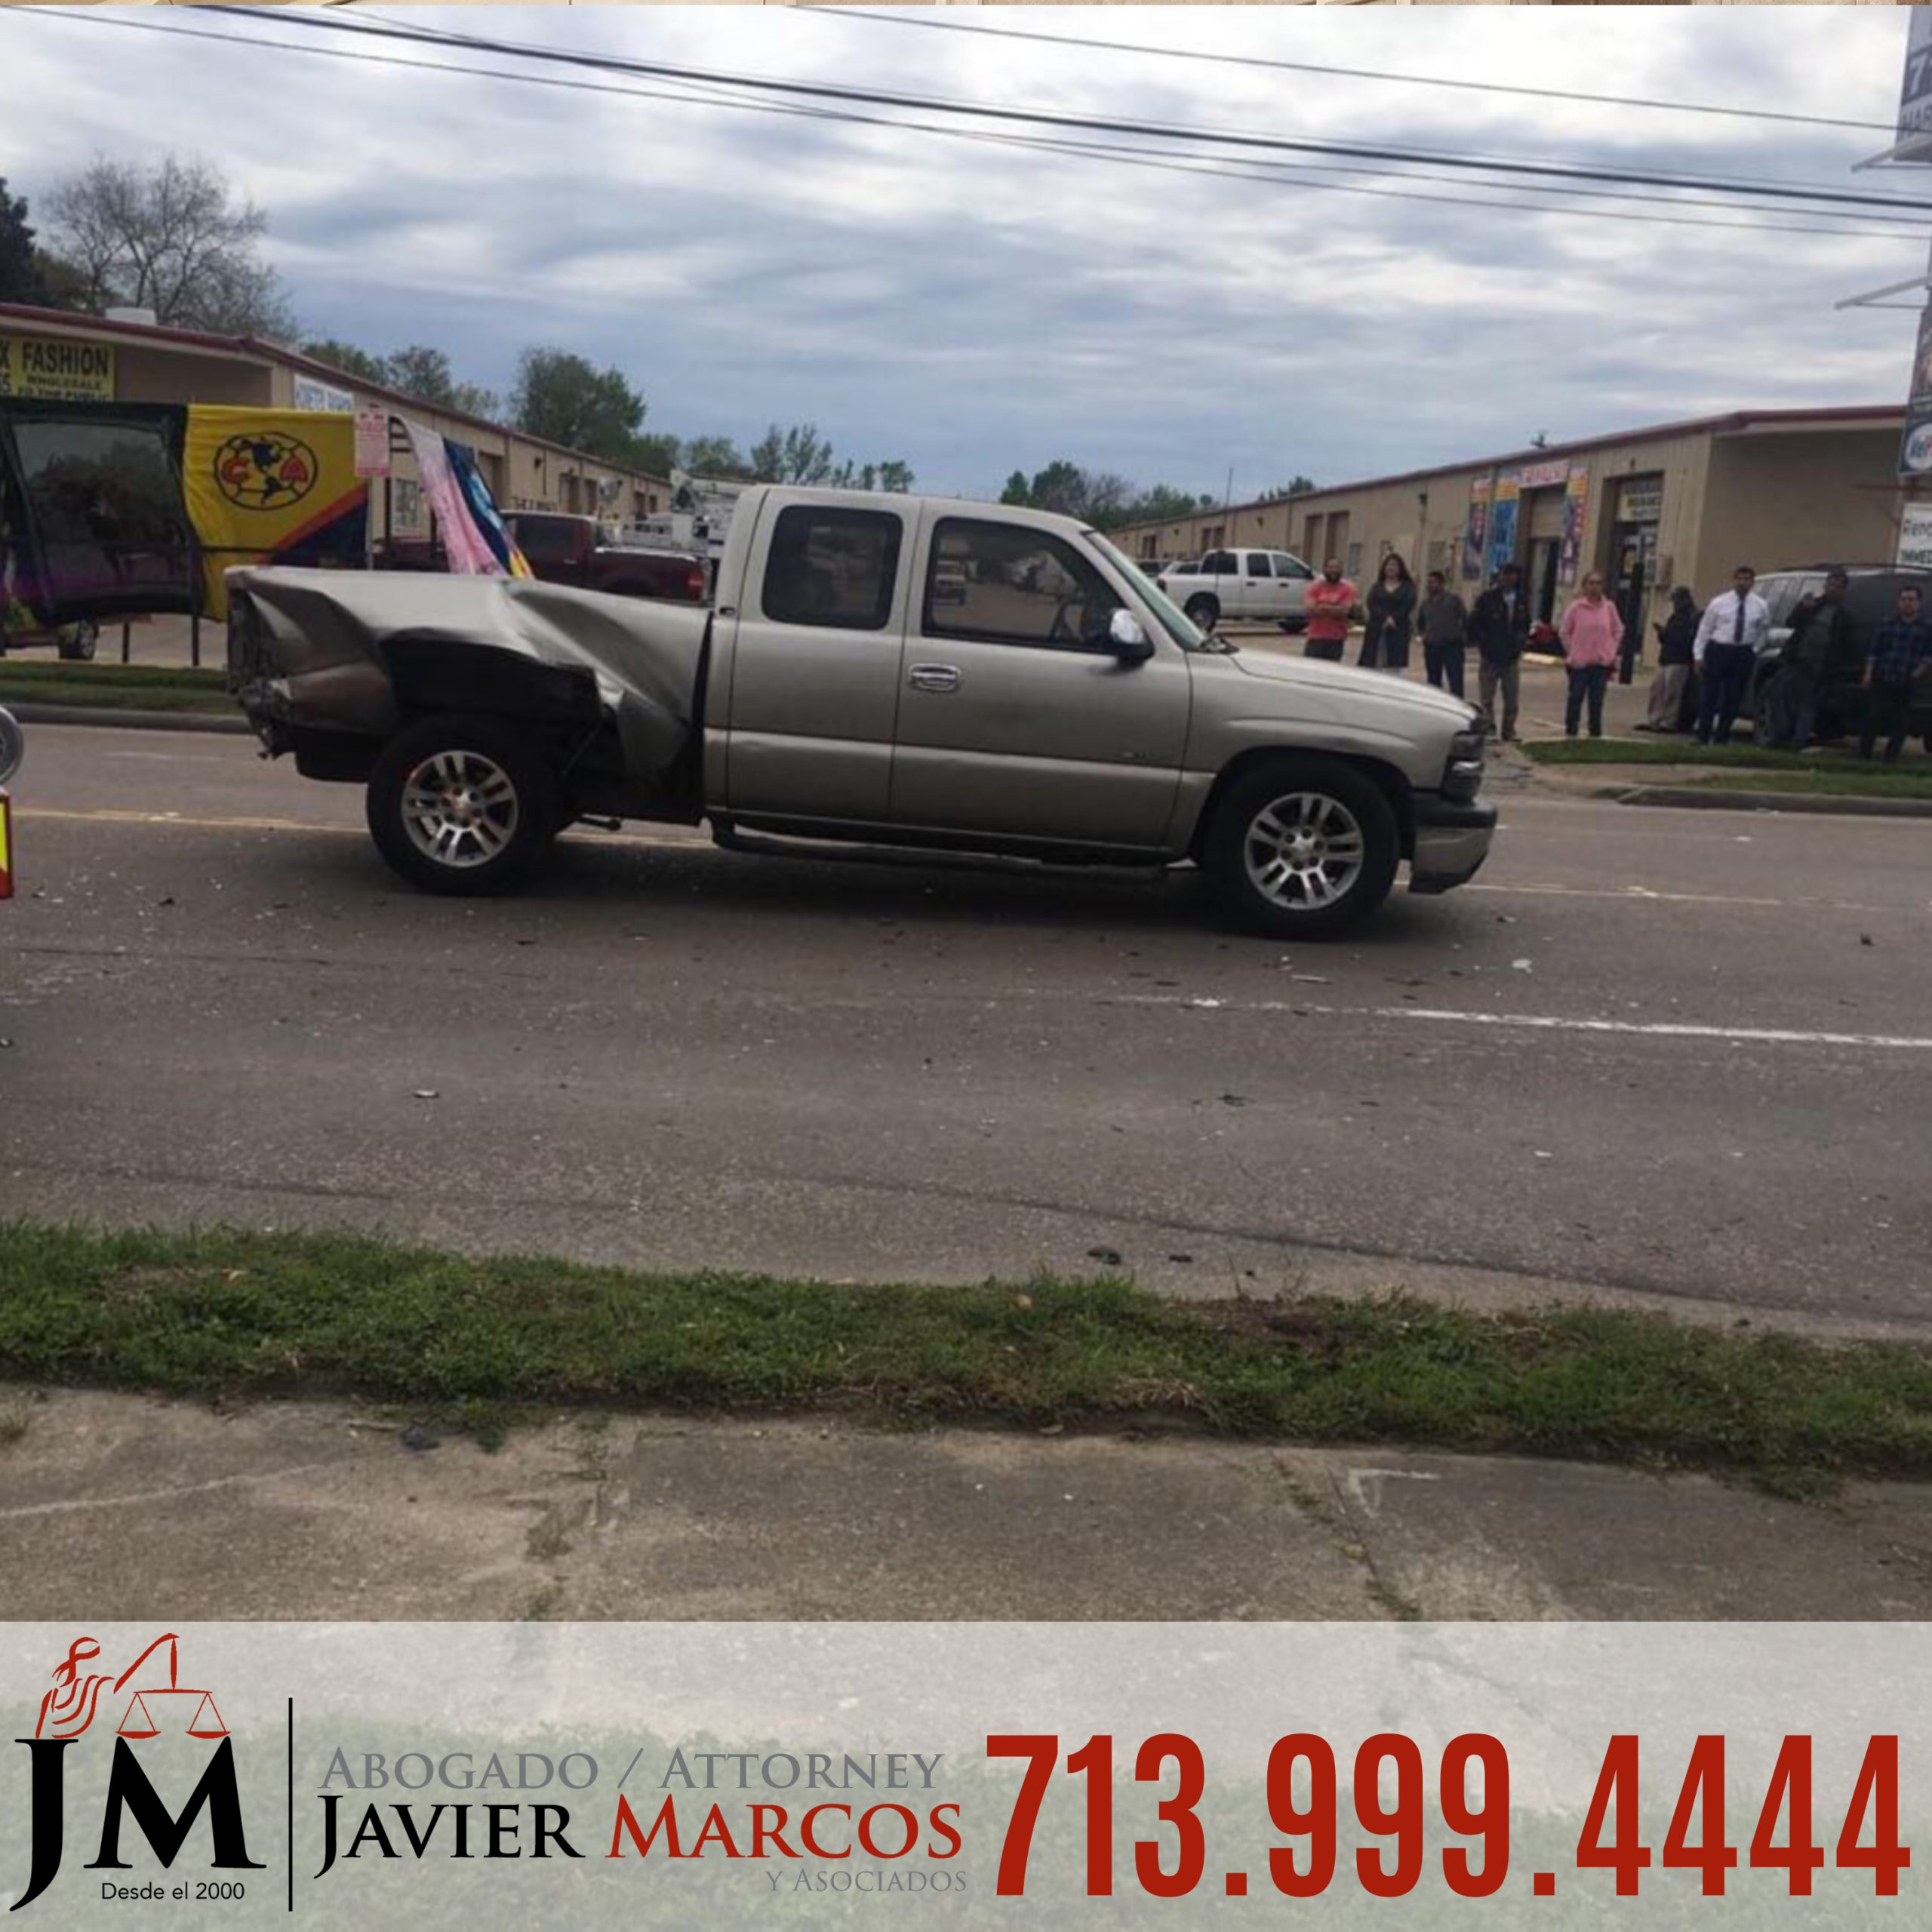 Avoid Social Media After an Accident | Attorney Javier Marcos | 713.999.4444